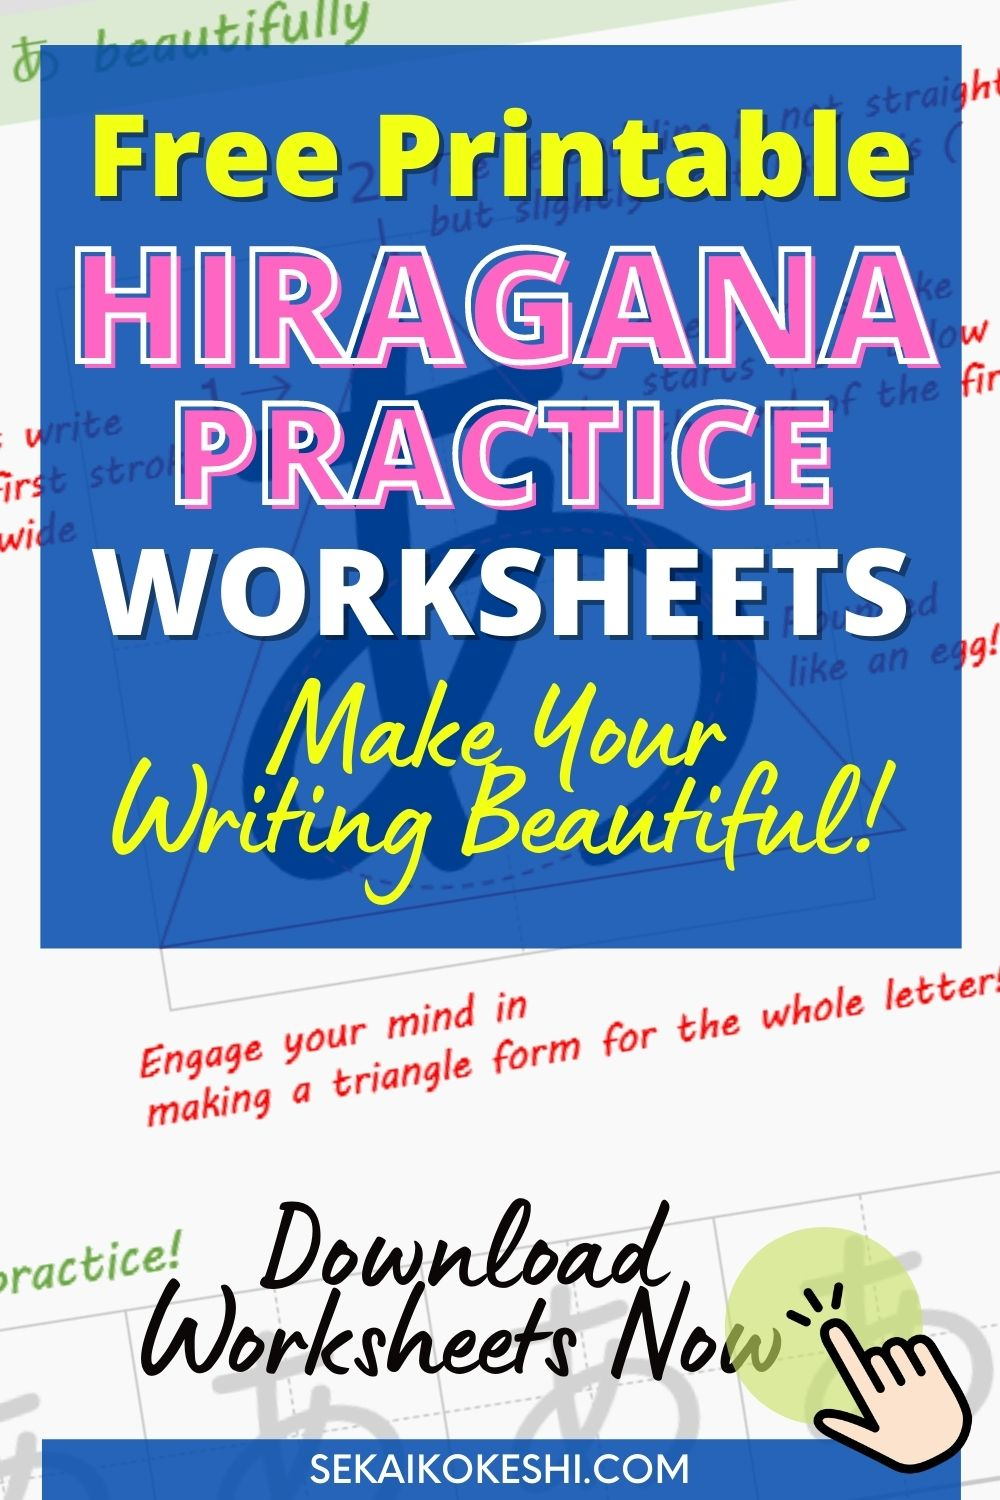 free printable hiragana practice worksheets, make your writing beautiful! download worksheets now, sekaikokeshi.com